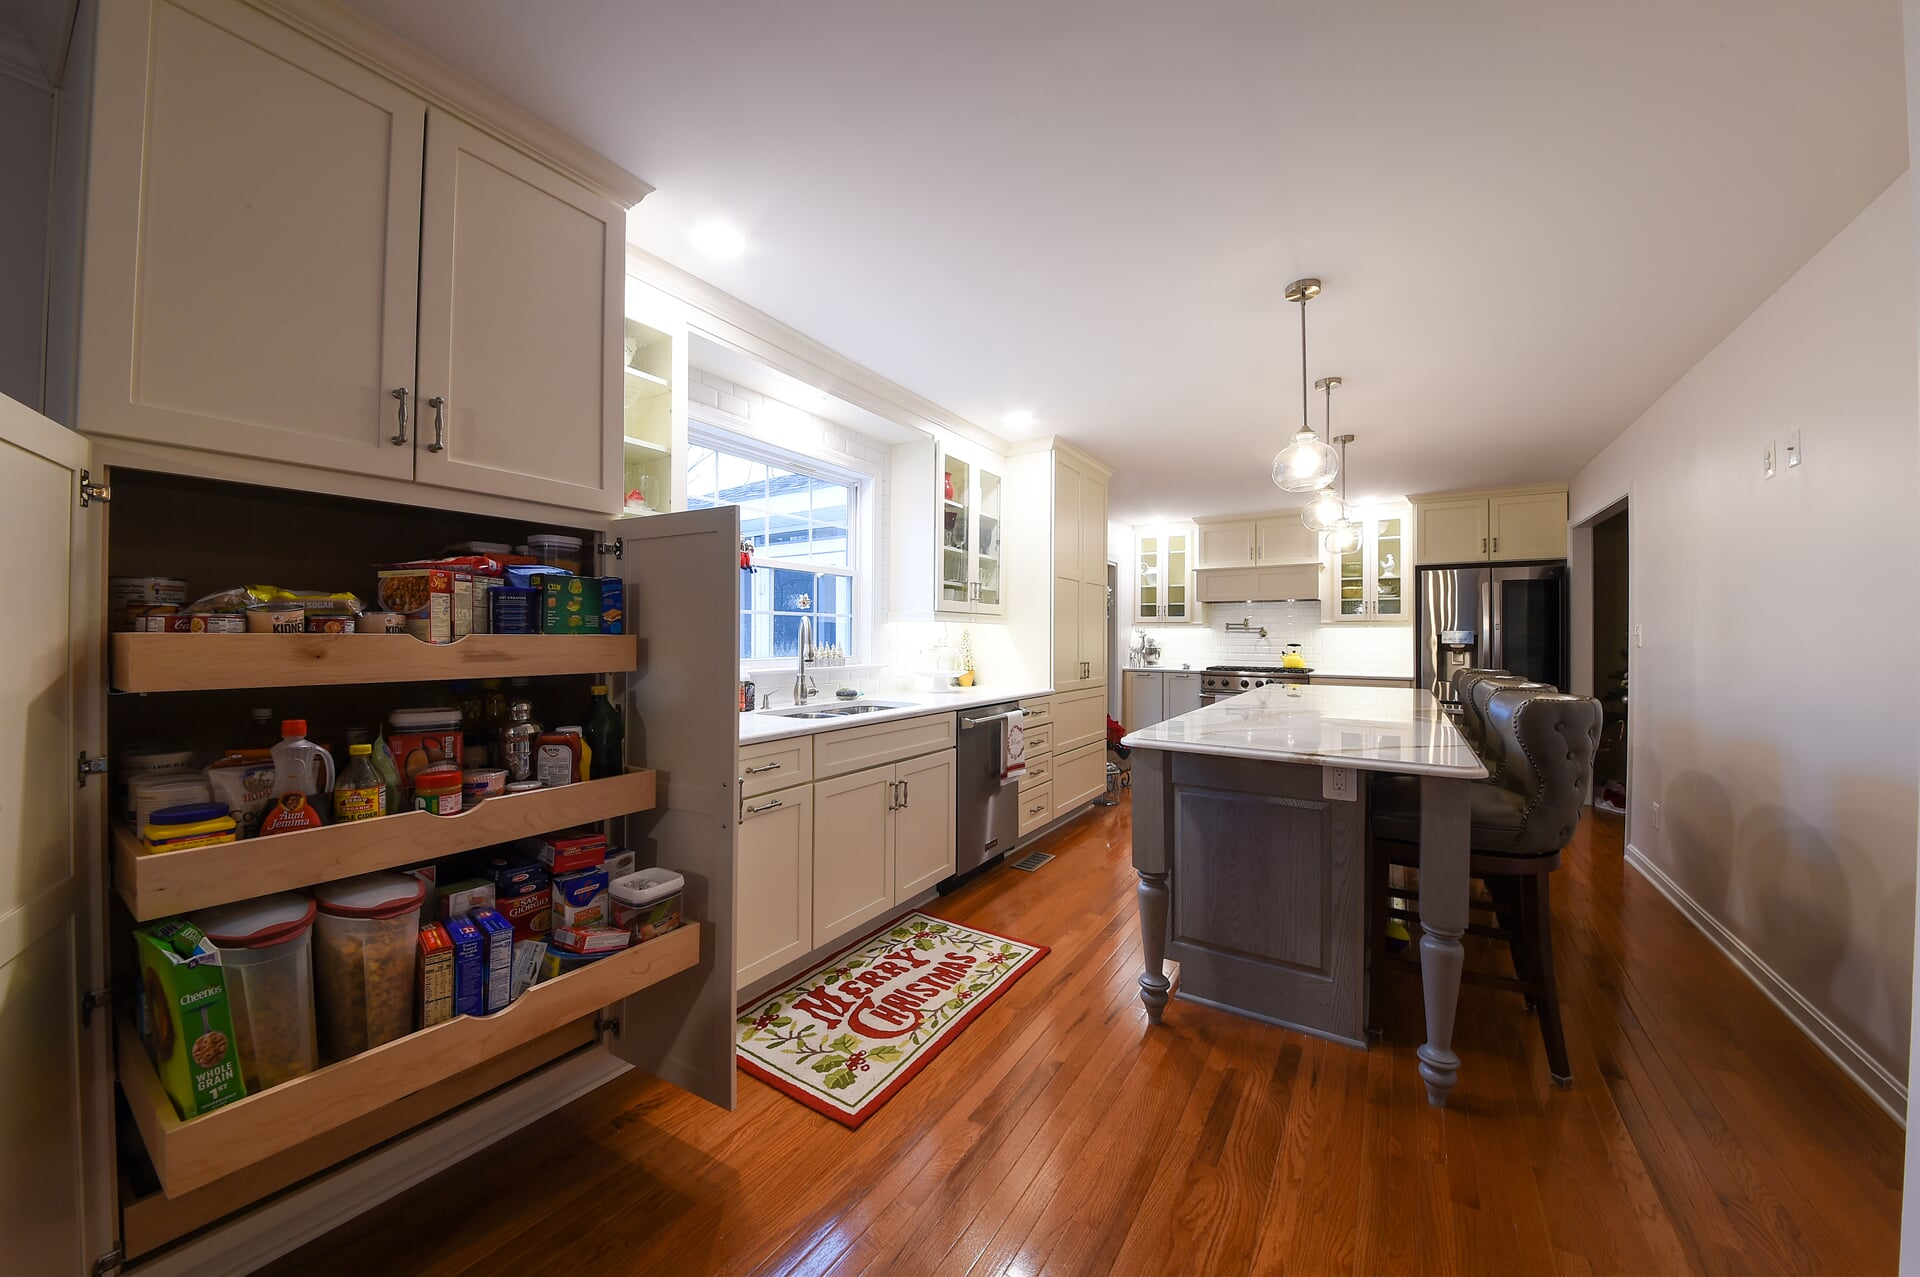 Kitchen remodeling in White Plains, MD by Southern Maryland Kitchen Bath Floors & Design